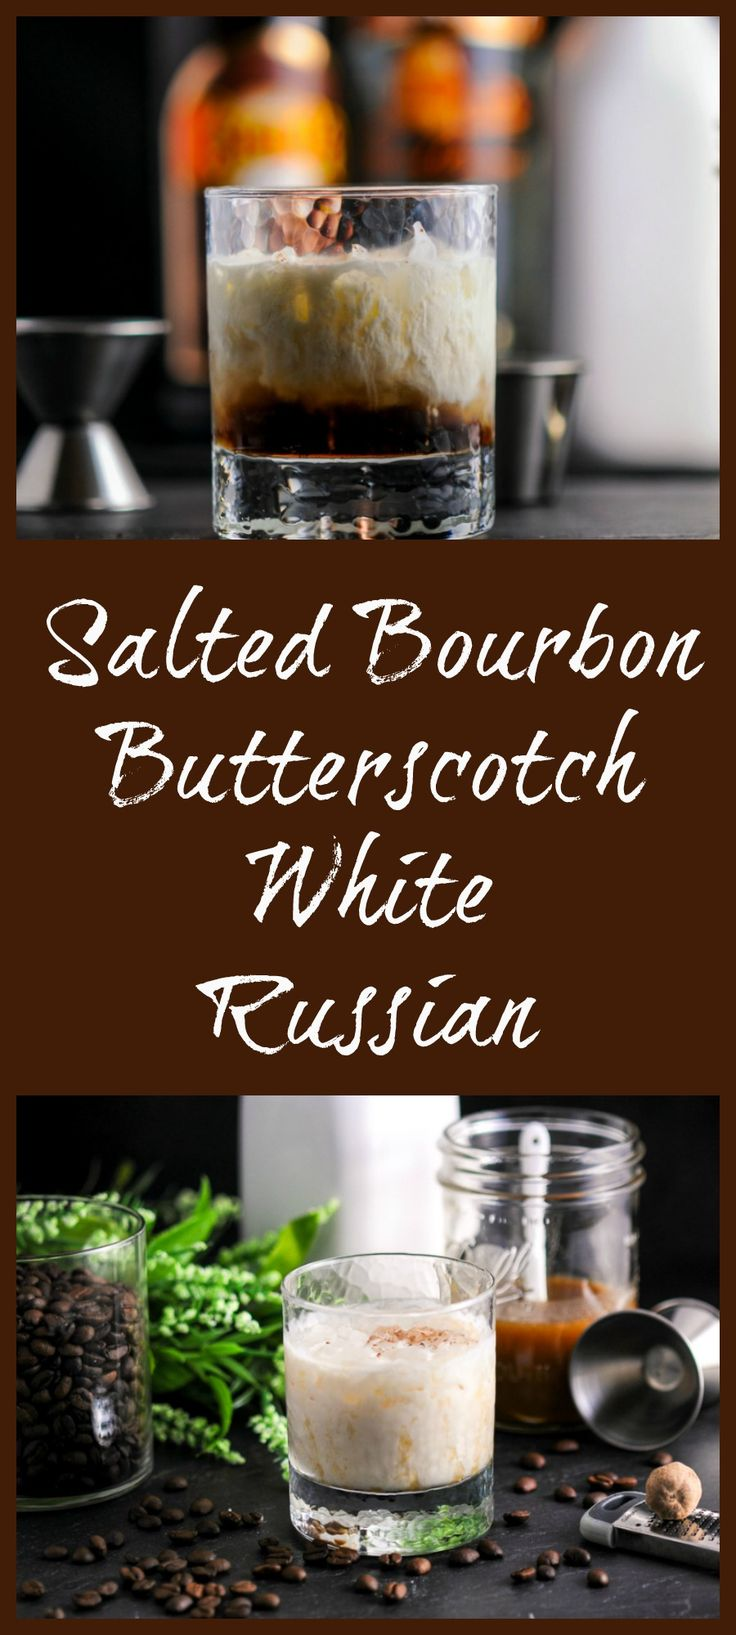 Salted Bourbon Butterscotch White Russian cocktail - kahlua, caramel vodka, cream. Recipe, drink